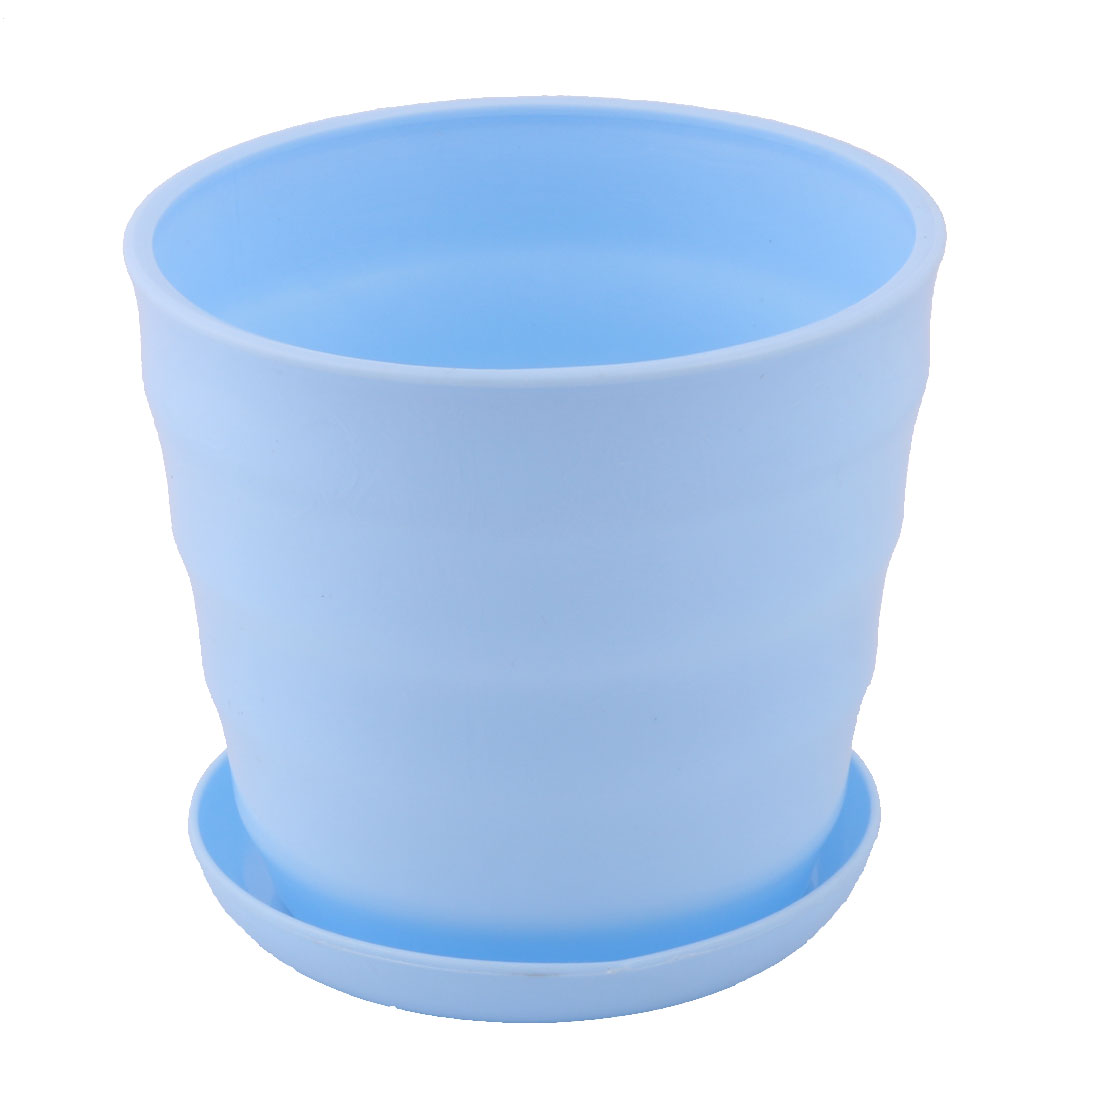 Yard Garden Plastic Round Plant Succulent Aloe Holder Flower Pot Container Light Blue